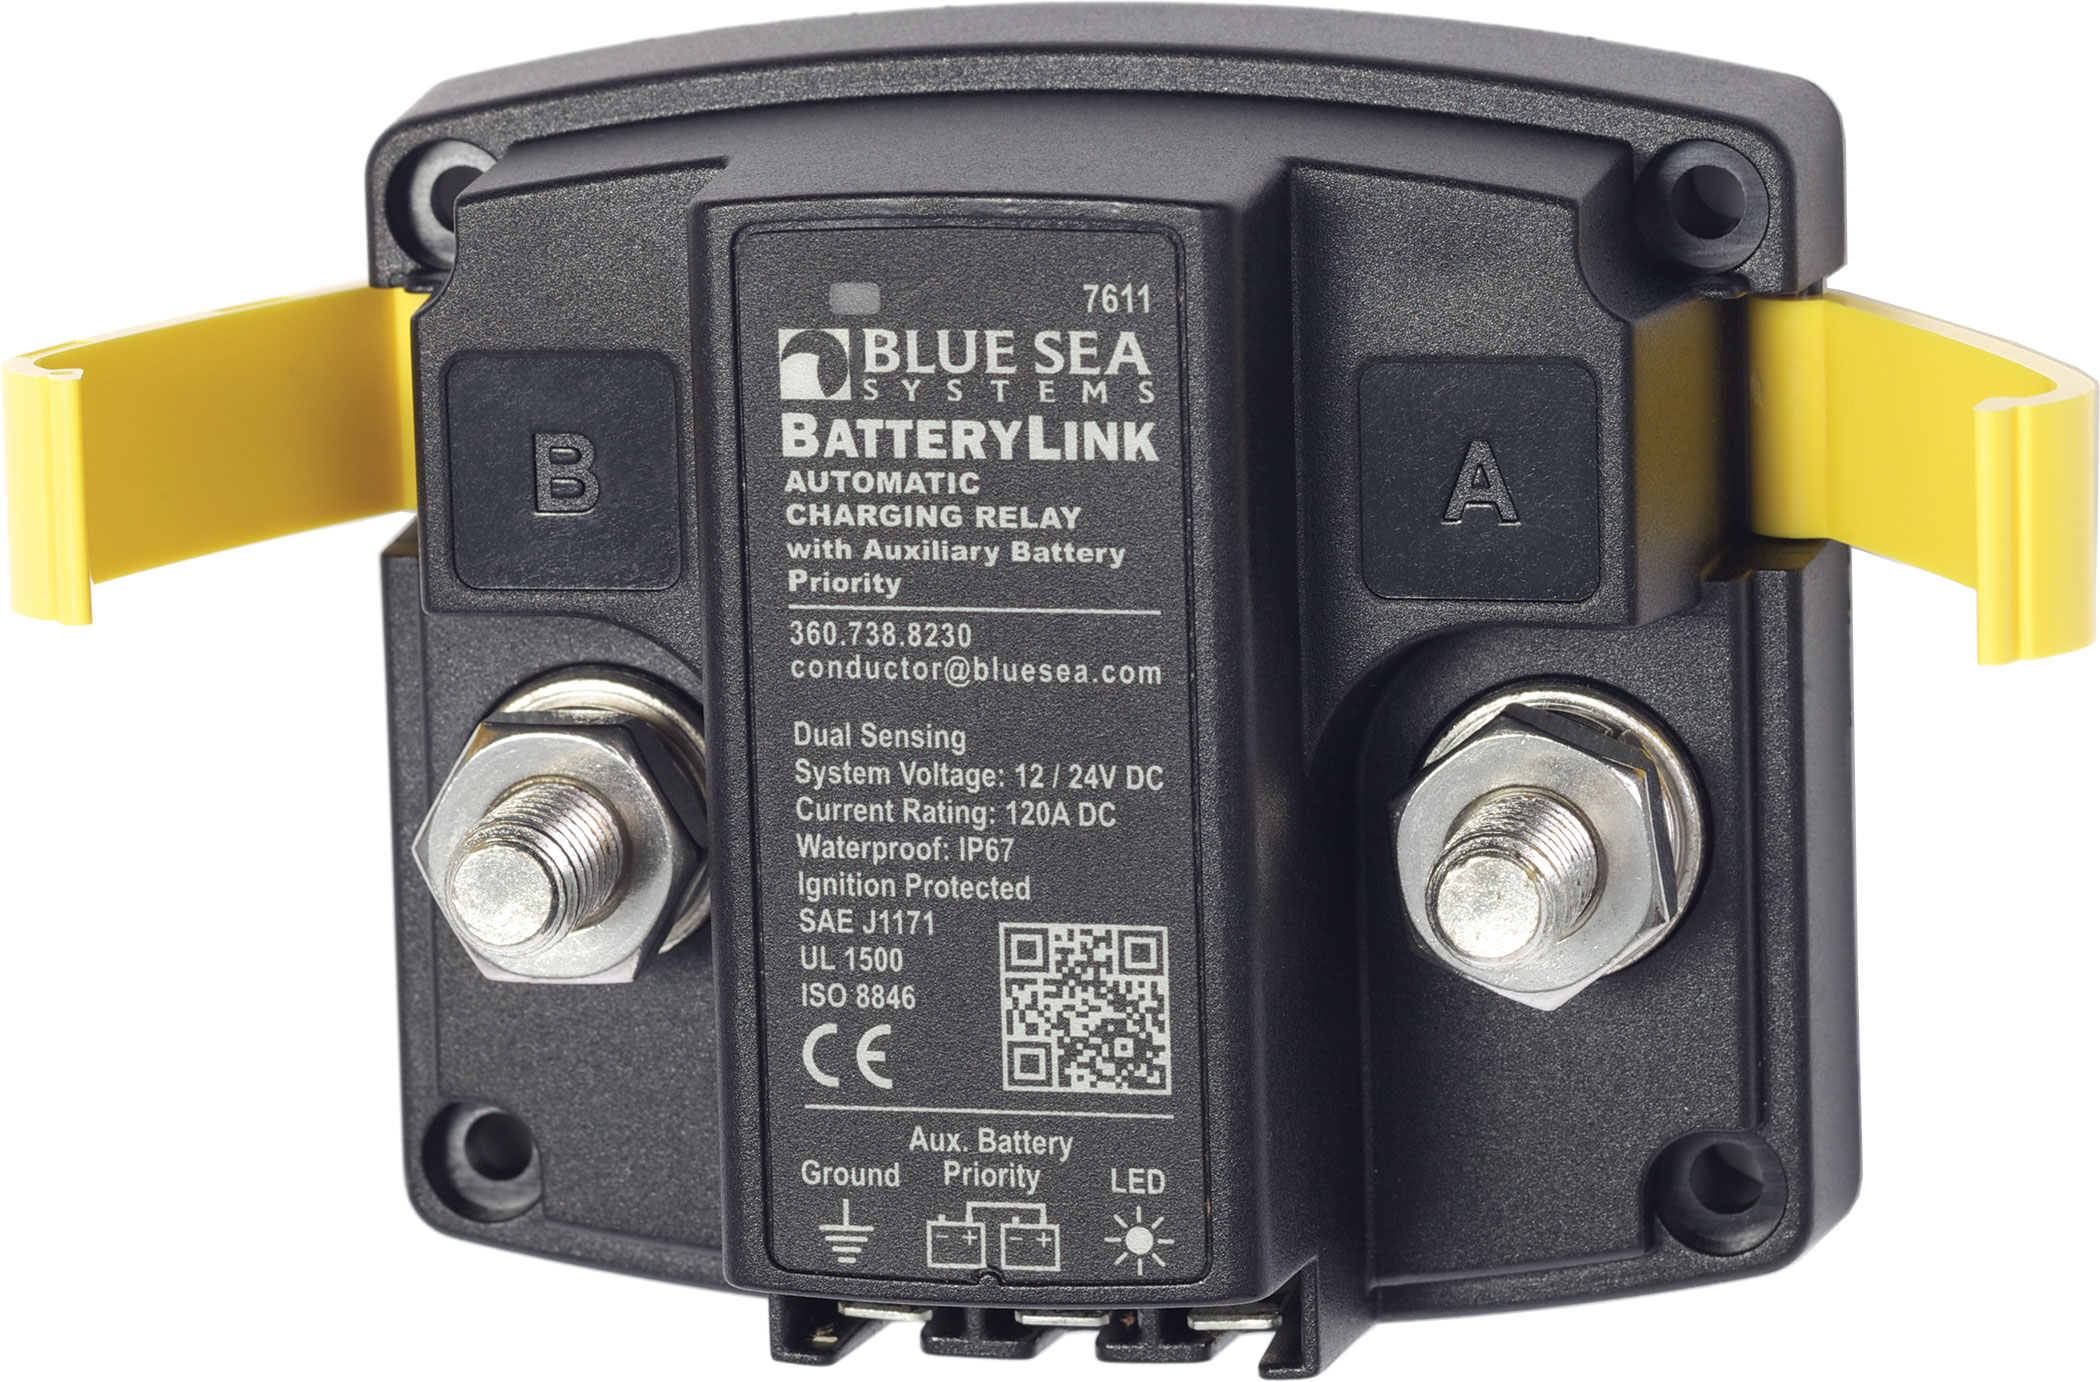 BatteryLink™ Automatic Charging Relay - 12V/24V DC 120A - Blue Sea on blue sea fuse block wiring diagram, blue sea acr with two engines, blue sea battery selector wiring, blue sea 7650 installation, carolina skiff diagram,